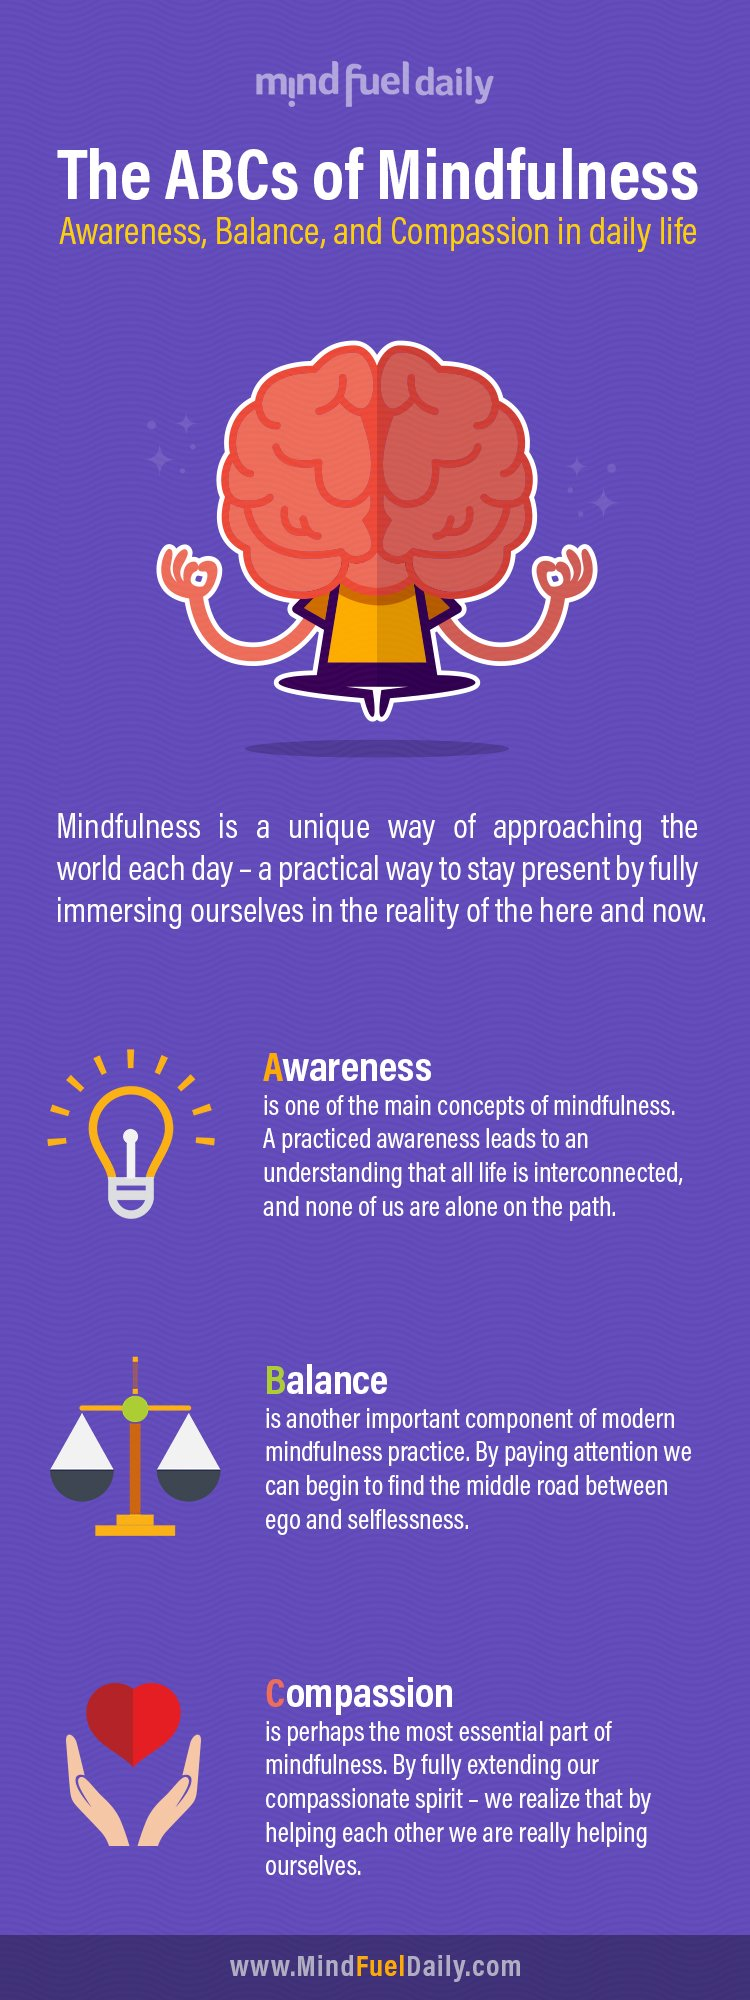 The ABC of Mindfulness: Awareness, Balance, Compassion